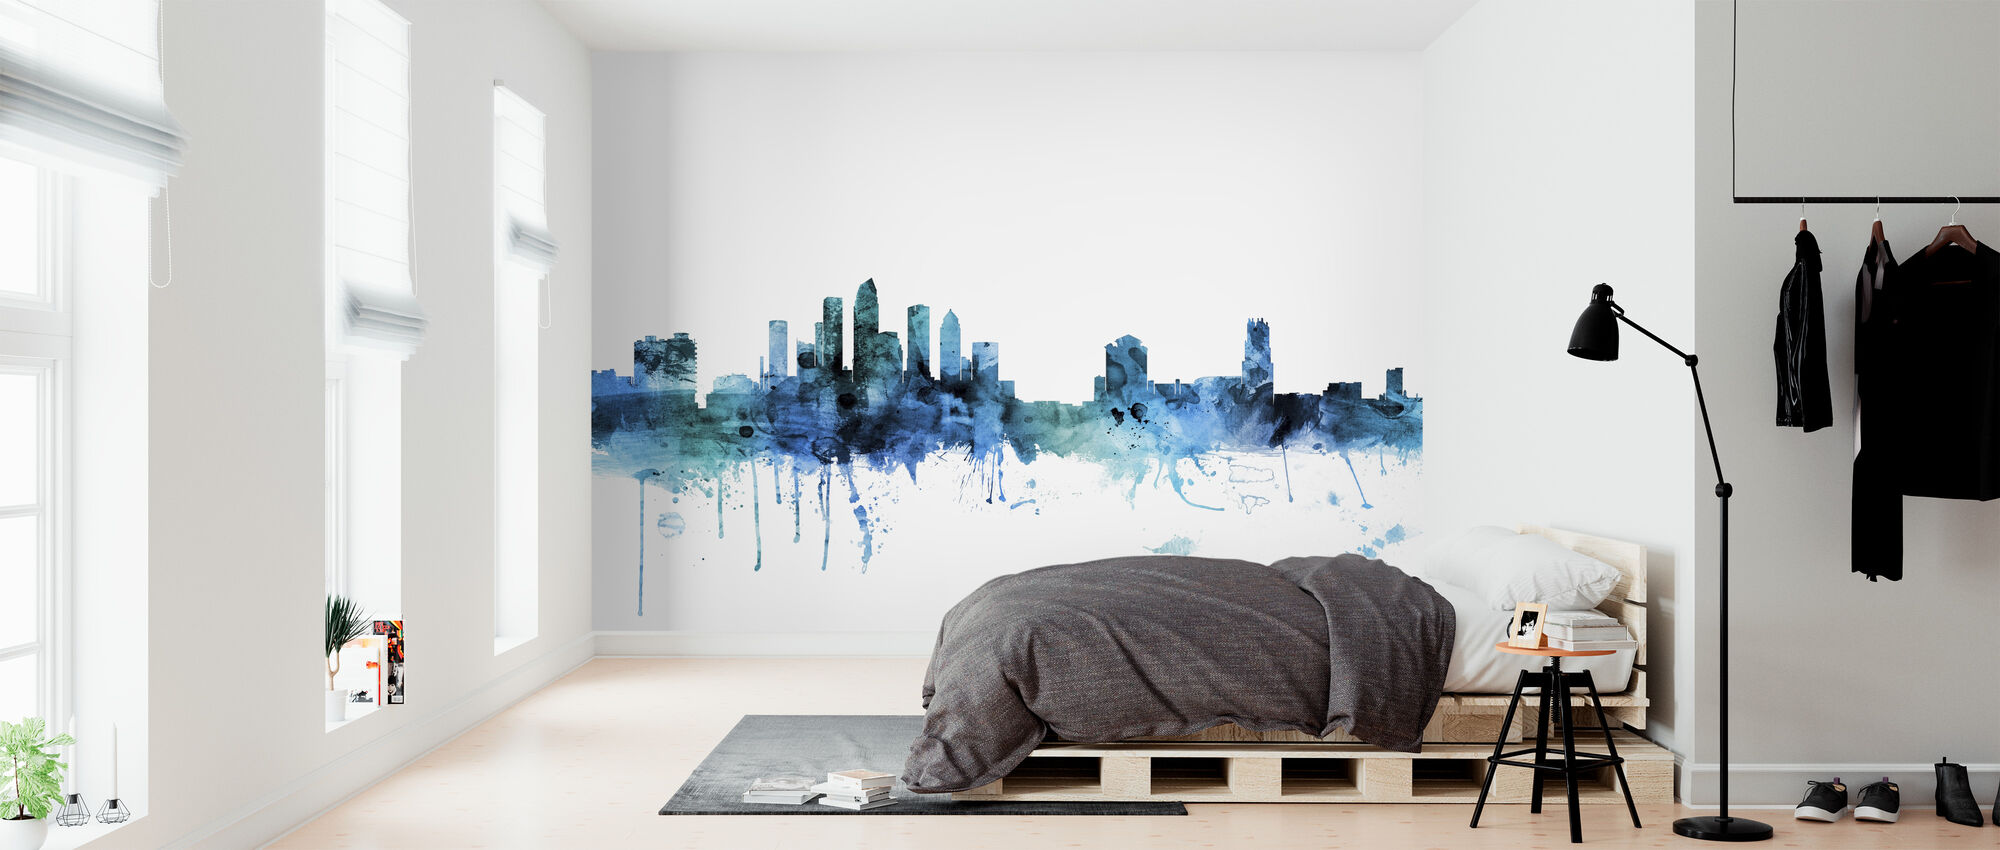 Tampa Florida Skyline - Wallpaper - Bedroom